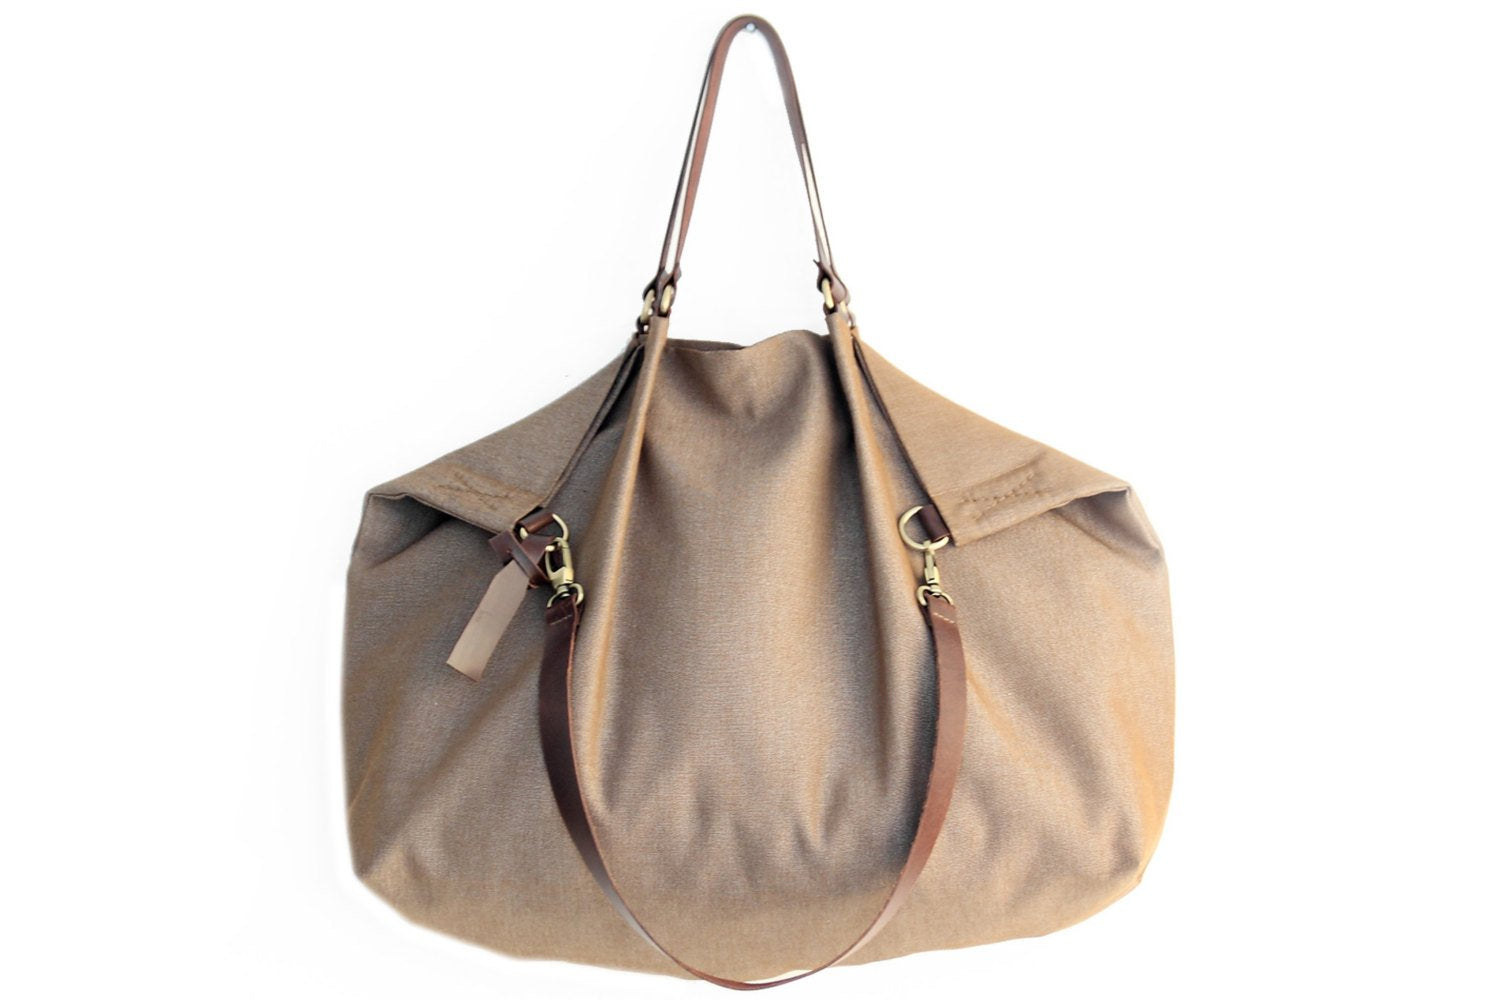 made of WATERPROOF fabric light brown Weekend bag Personalized bag with name. canvas and leather shoulder bag